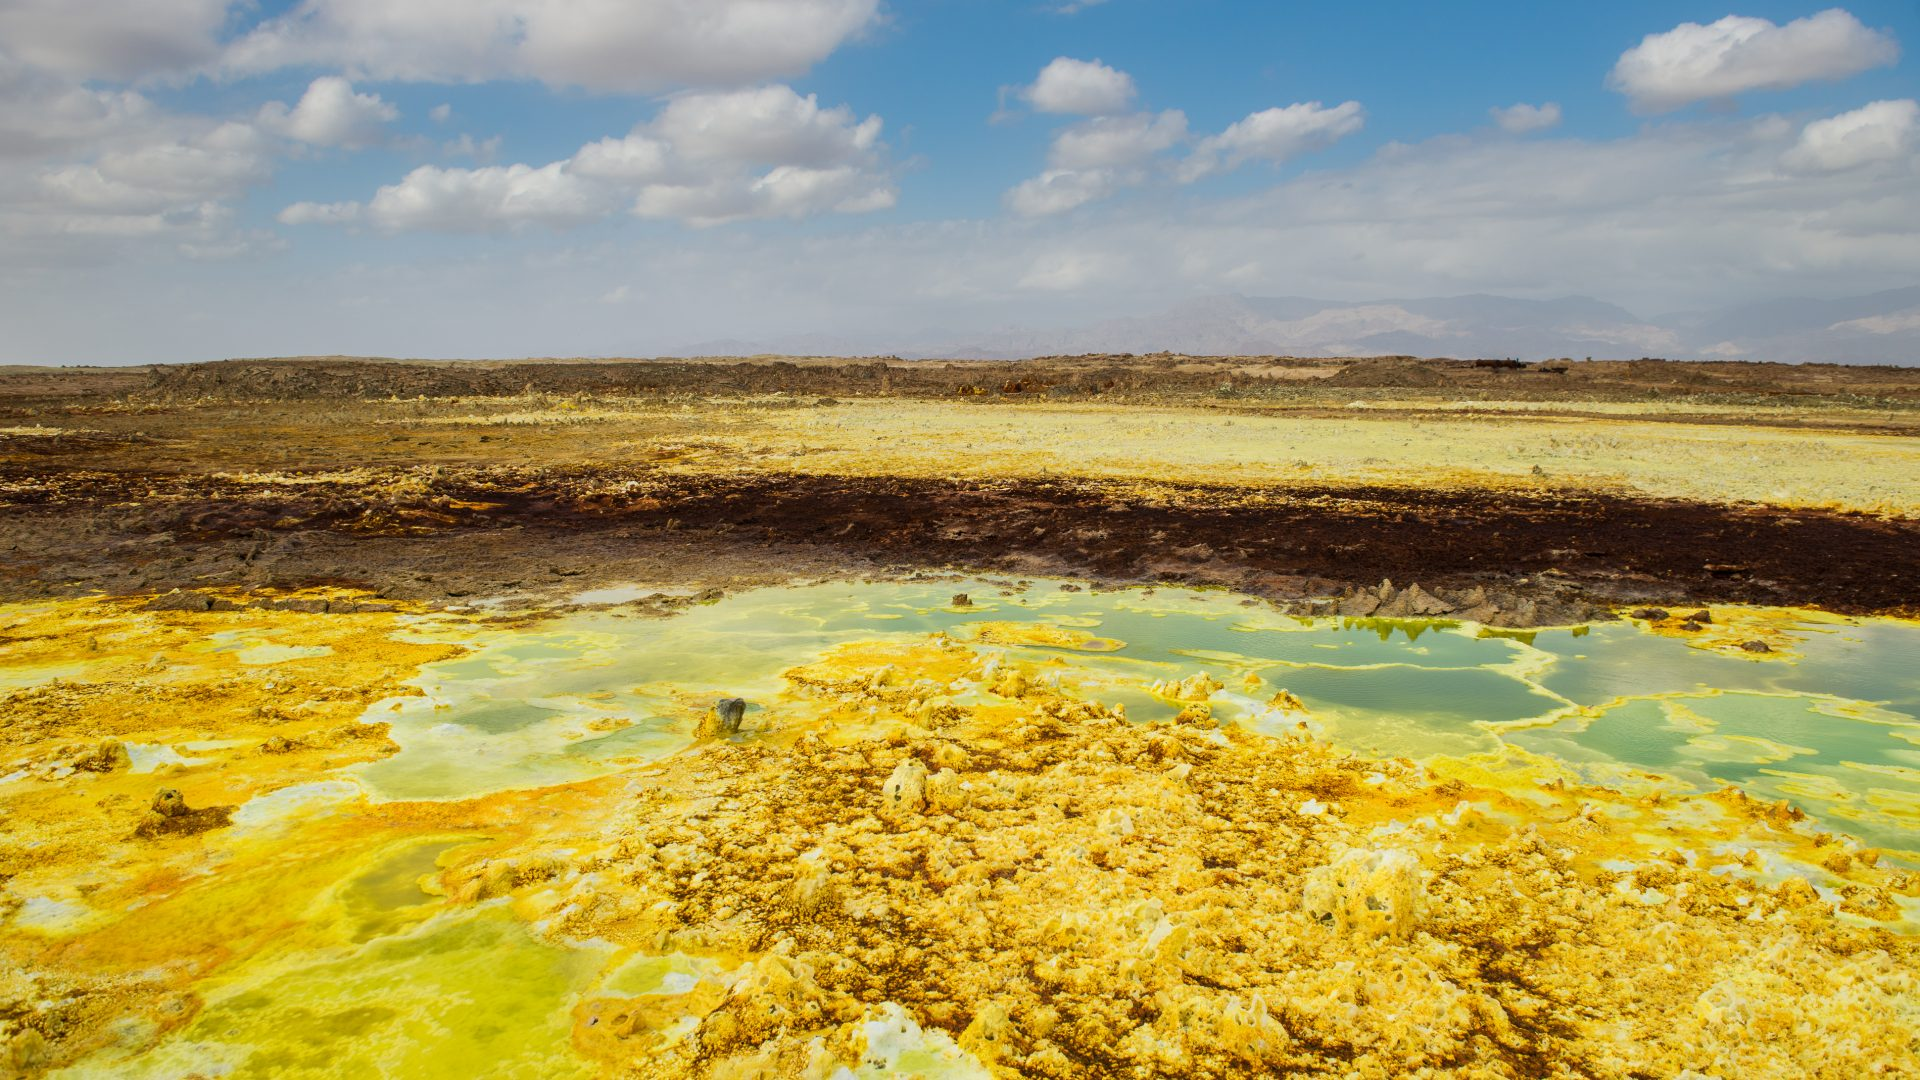 Surreal colors of green, yellow and brown make up the sulphur pools in the Danakil Depression, Ethiopia.